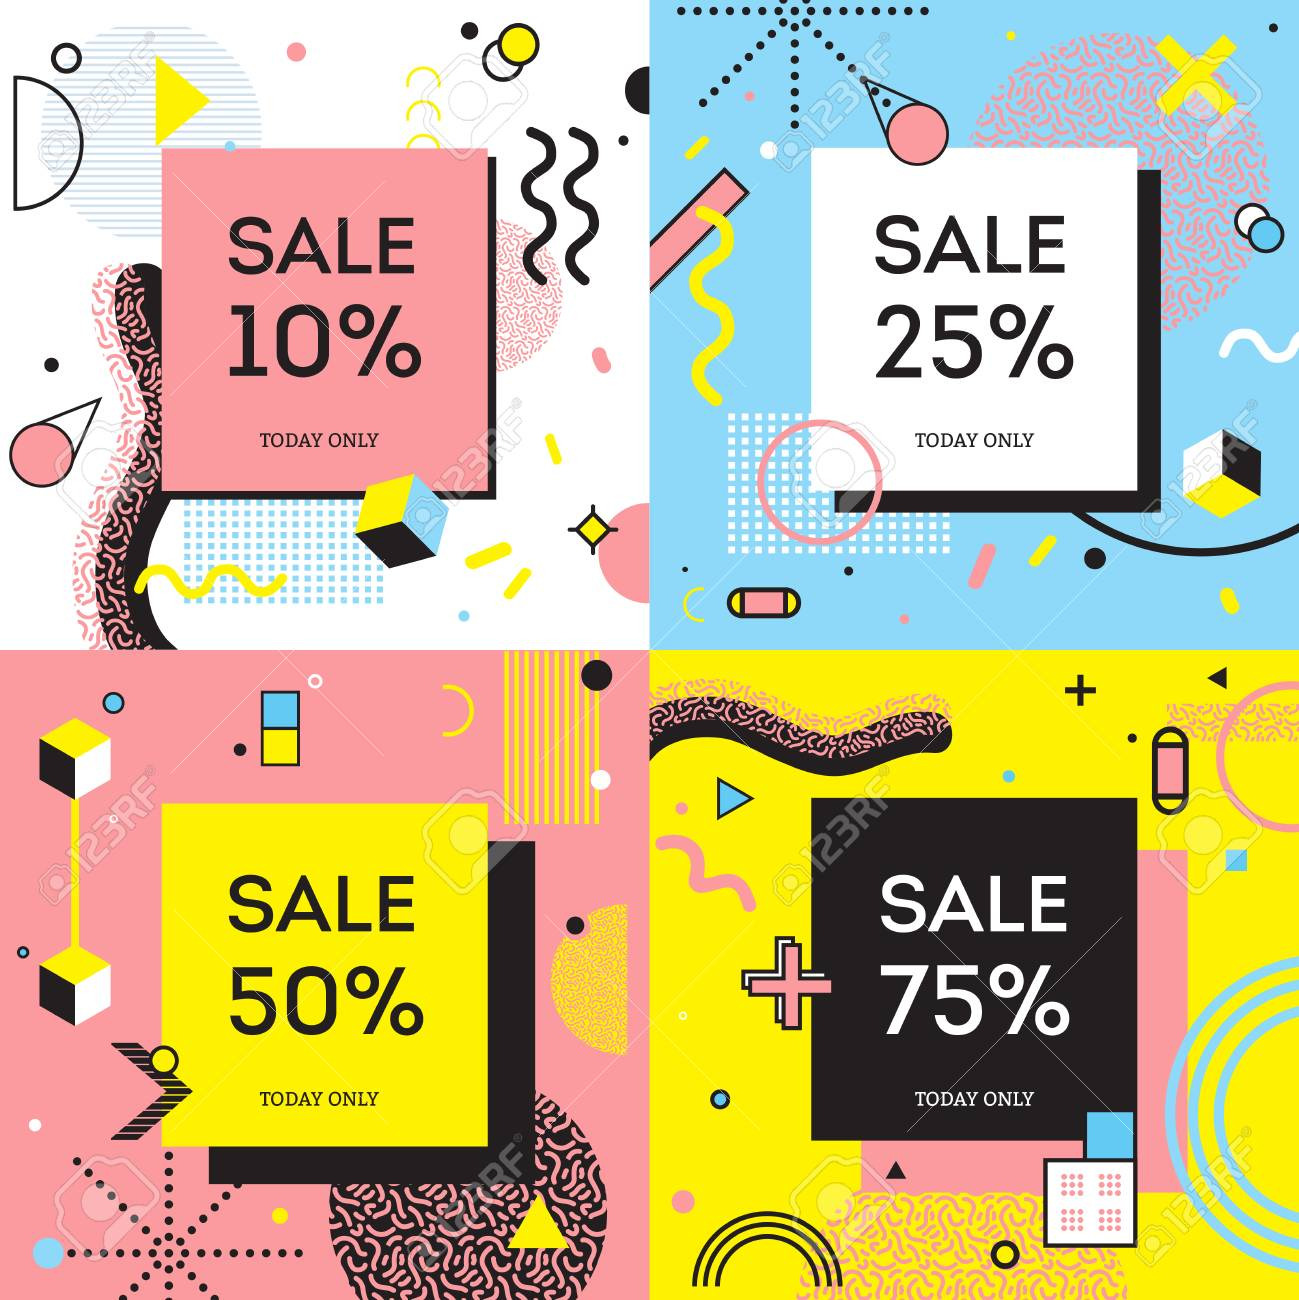 ea782f9acb174 Sale concept in memphis style with percentage of discount on background  with geometric shapes isolated vector